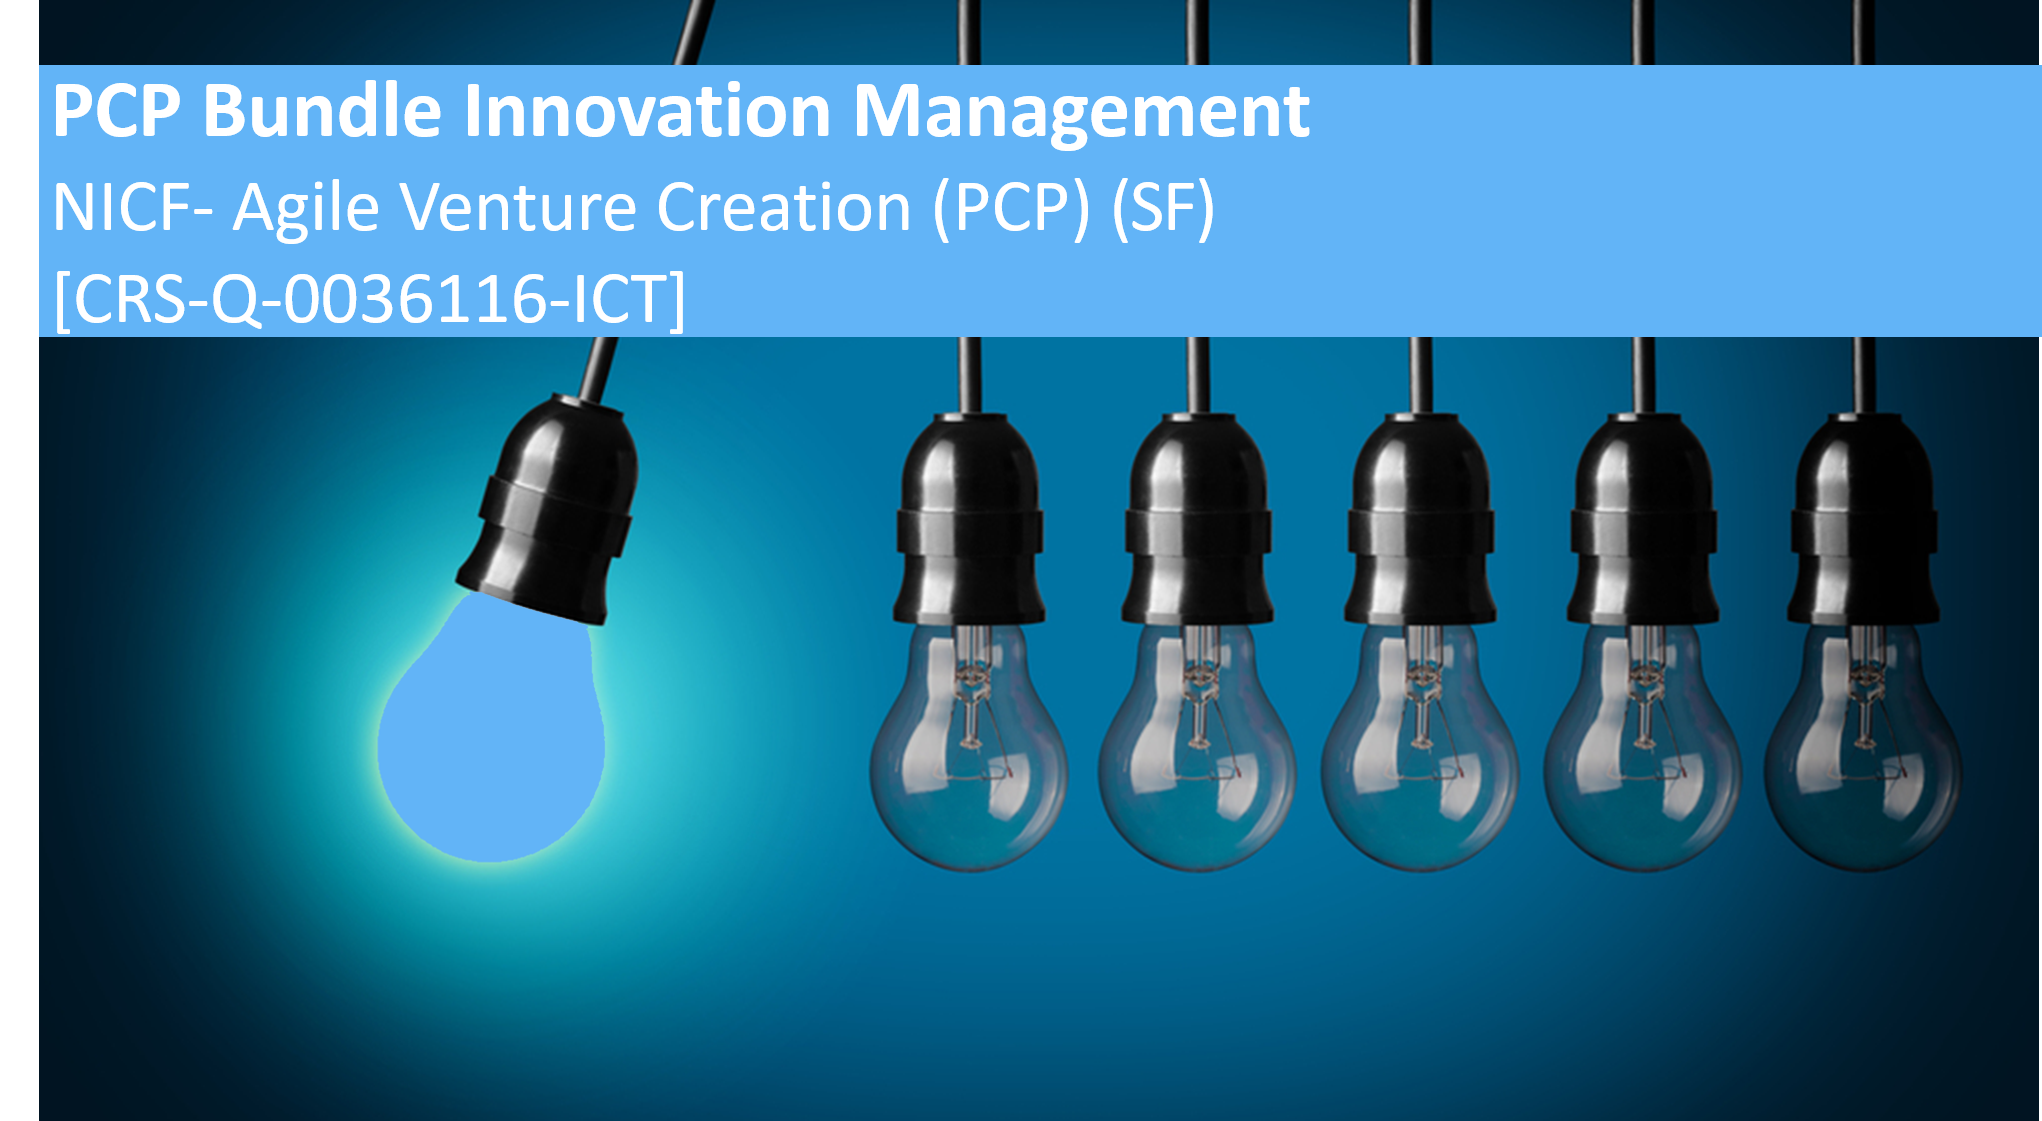 NICF-Agile Venture Creation (PCP) (SF) [Do not use] DIM-OutdatedMaster